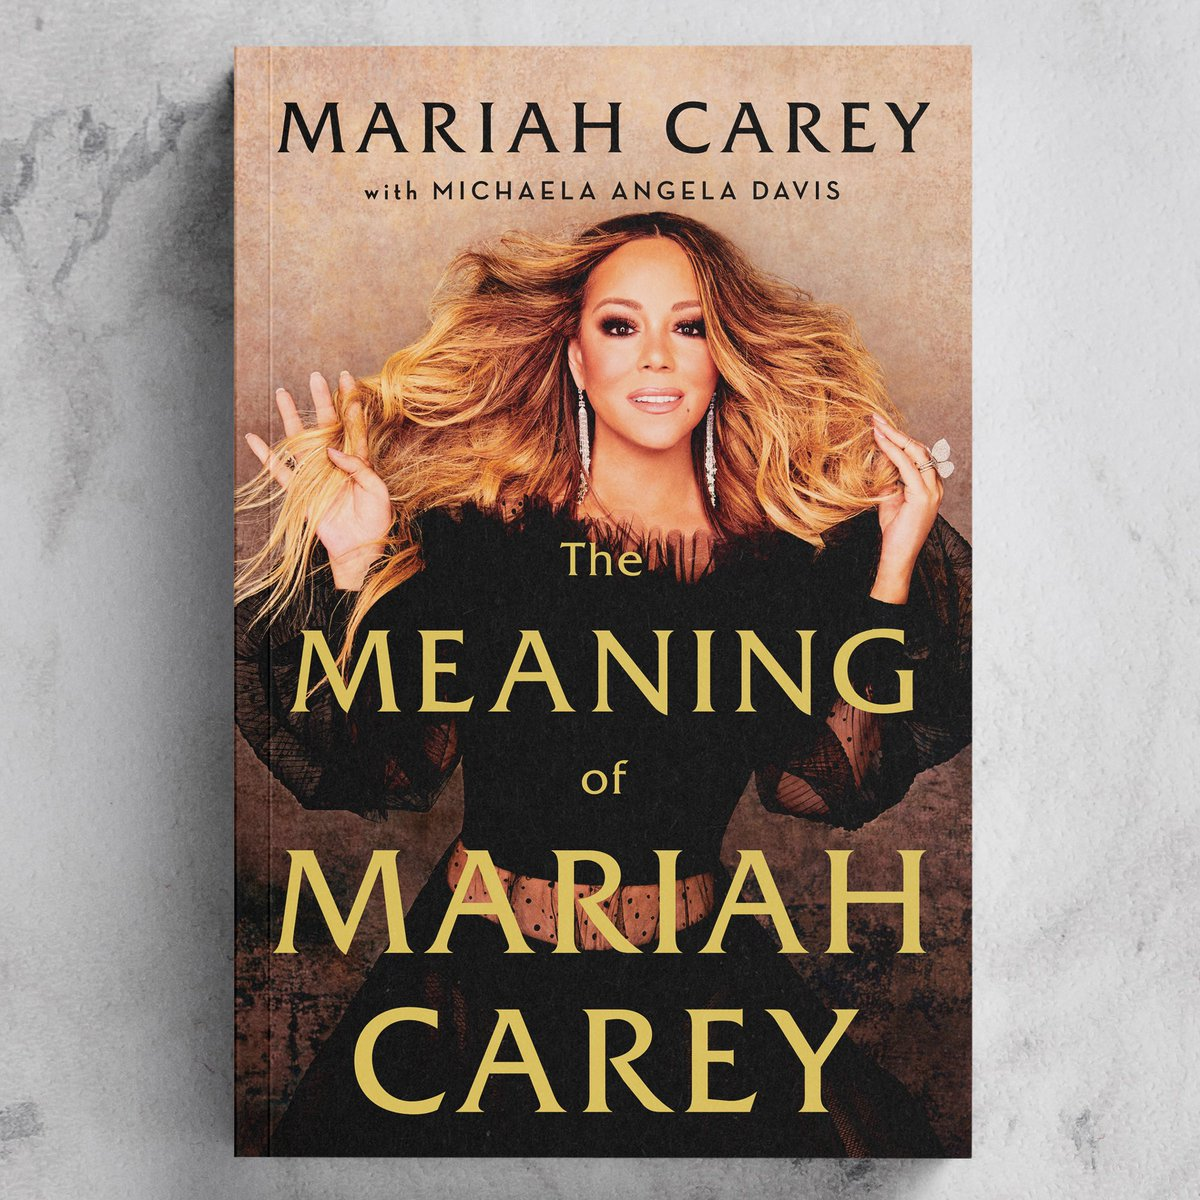 The Meaning of Mariah Carey 🦋 Out Sept 29 🦋 Pre-order: https://t.co/zepHkXMYFJ https://t.co/vEgi6PEMXX